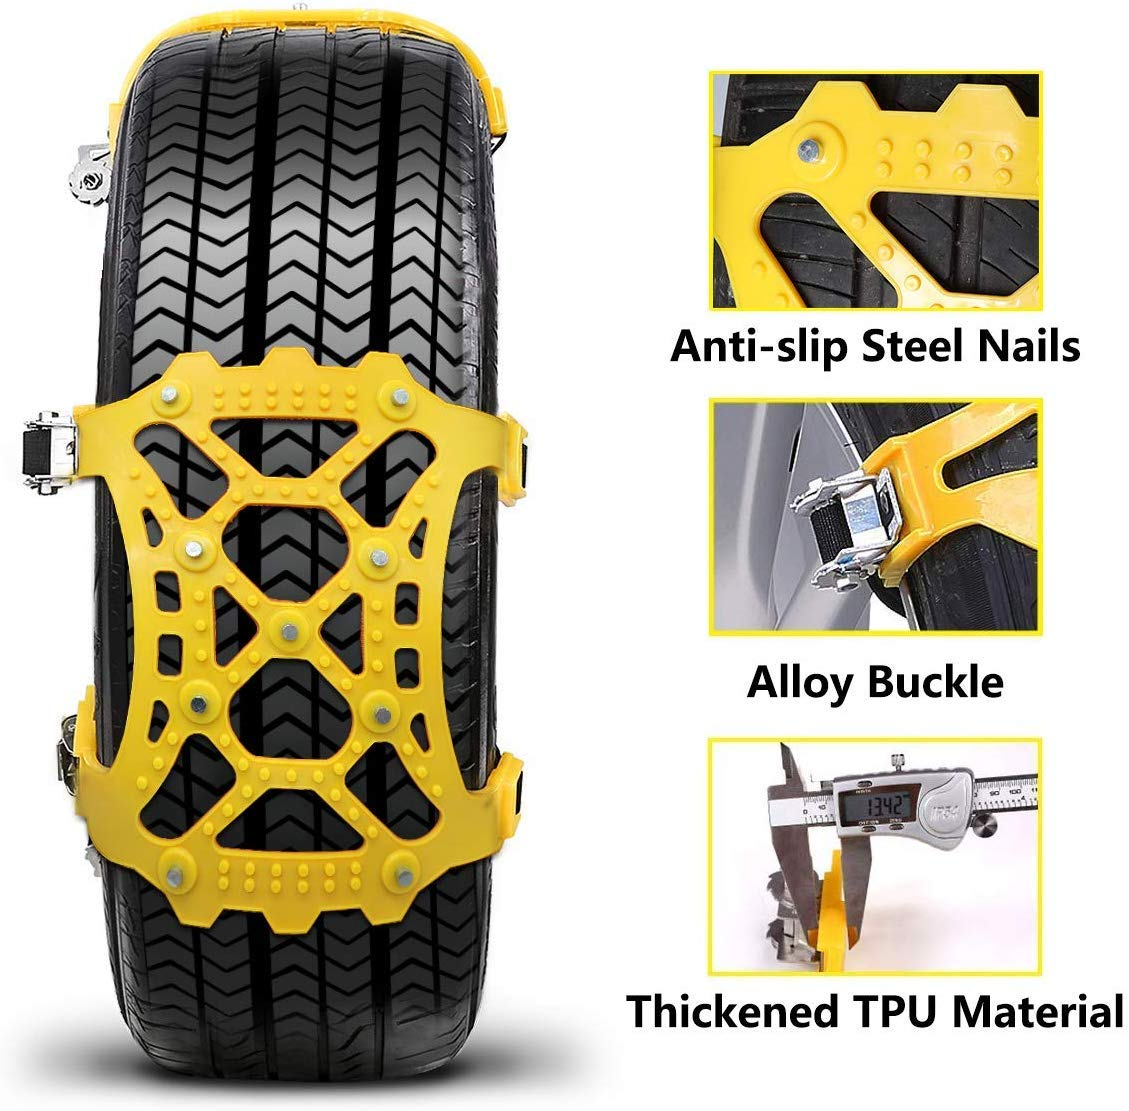 Anti-Skid Tire Traction Chains Portable for Light Truck//SUV Tire Emergency Thickening Security Tire Range165-285mm Vodche 6Pcs Universal Car Snow Chains